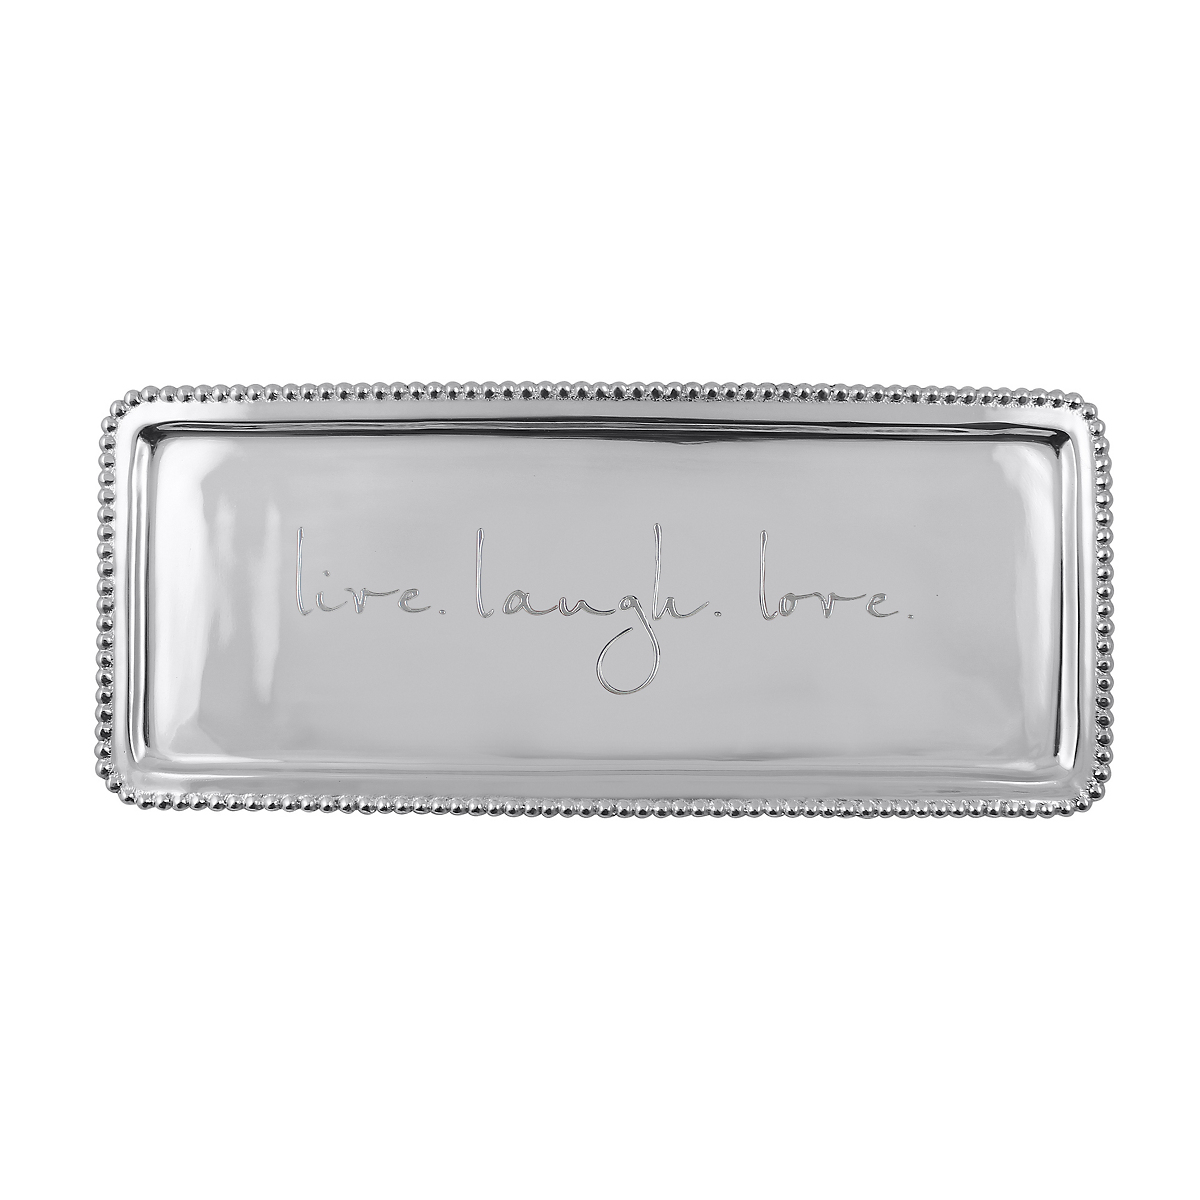 Mariposa Live, Laugh, Love Large Tray